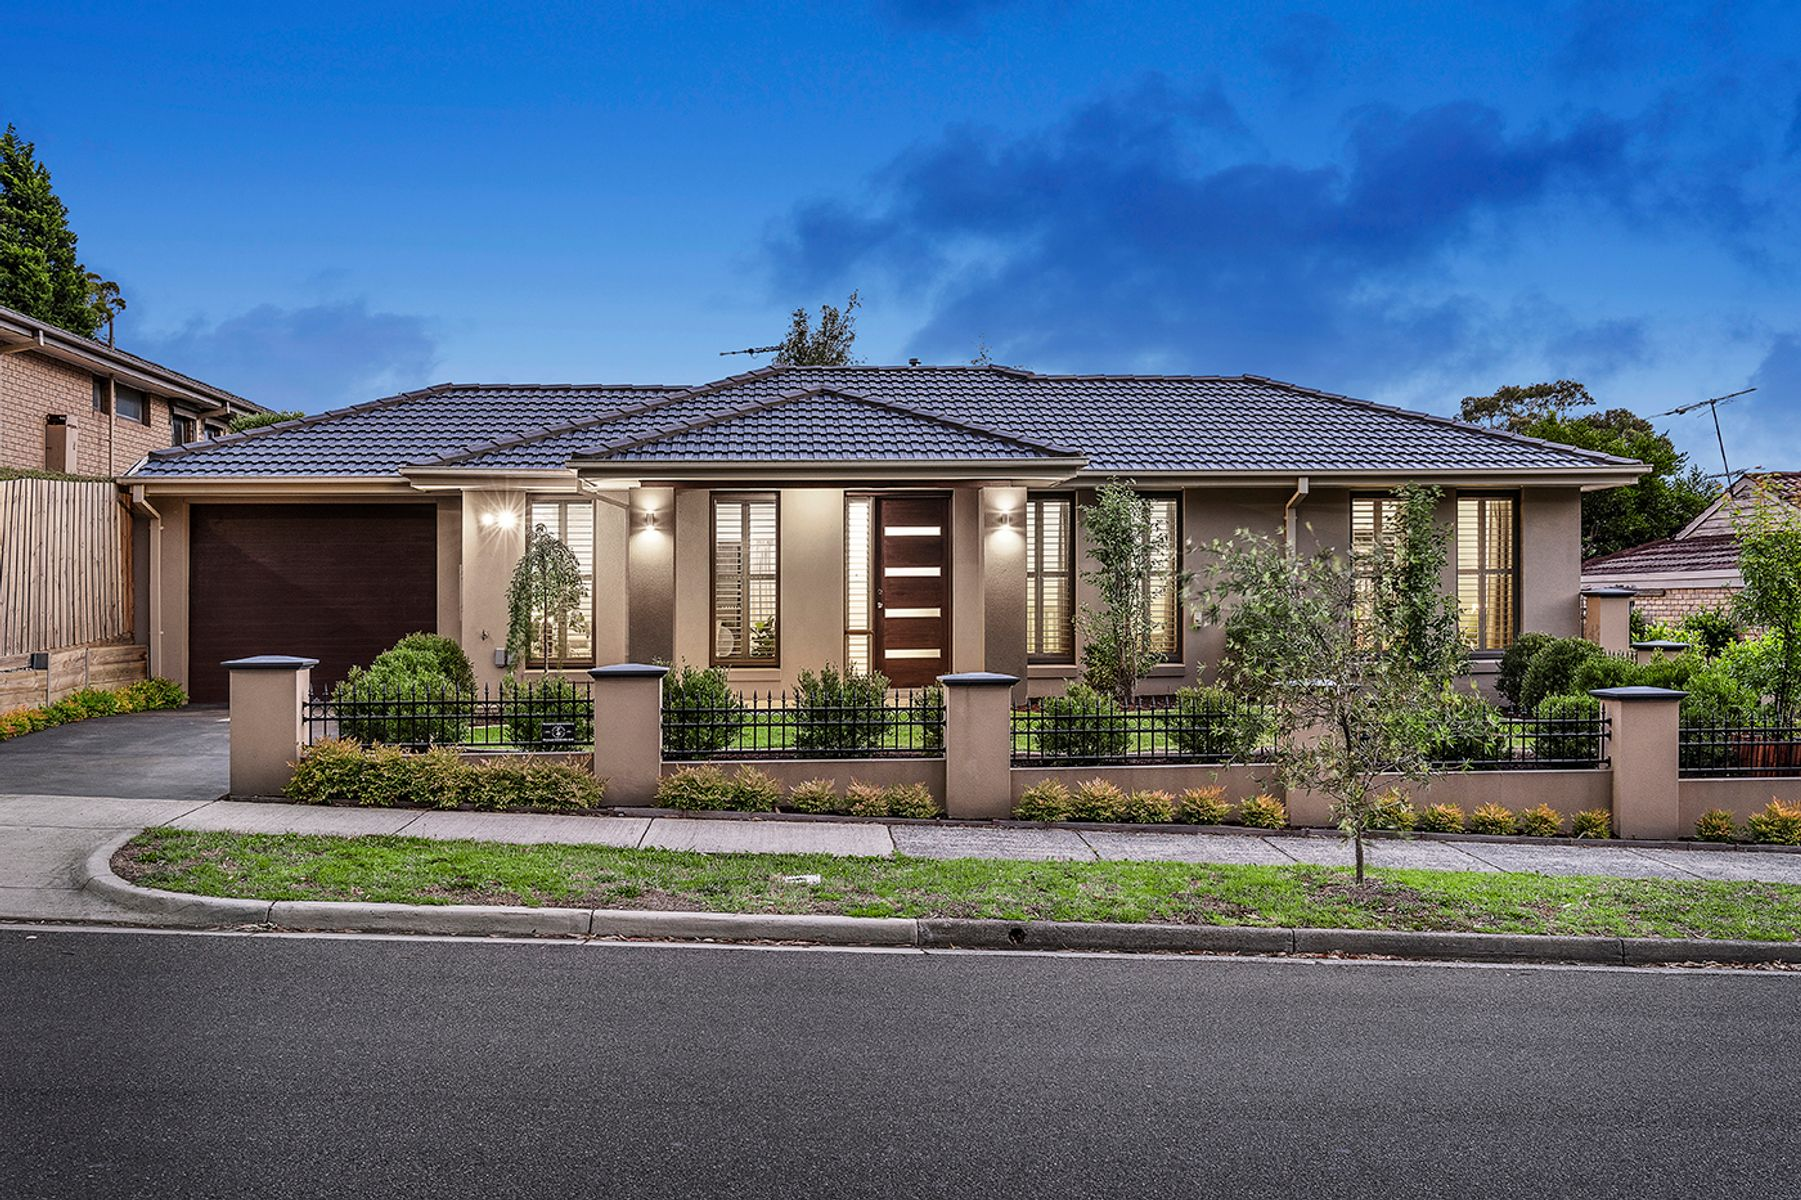 14 George Road, Vermont South, VIC 3133